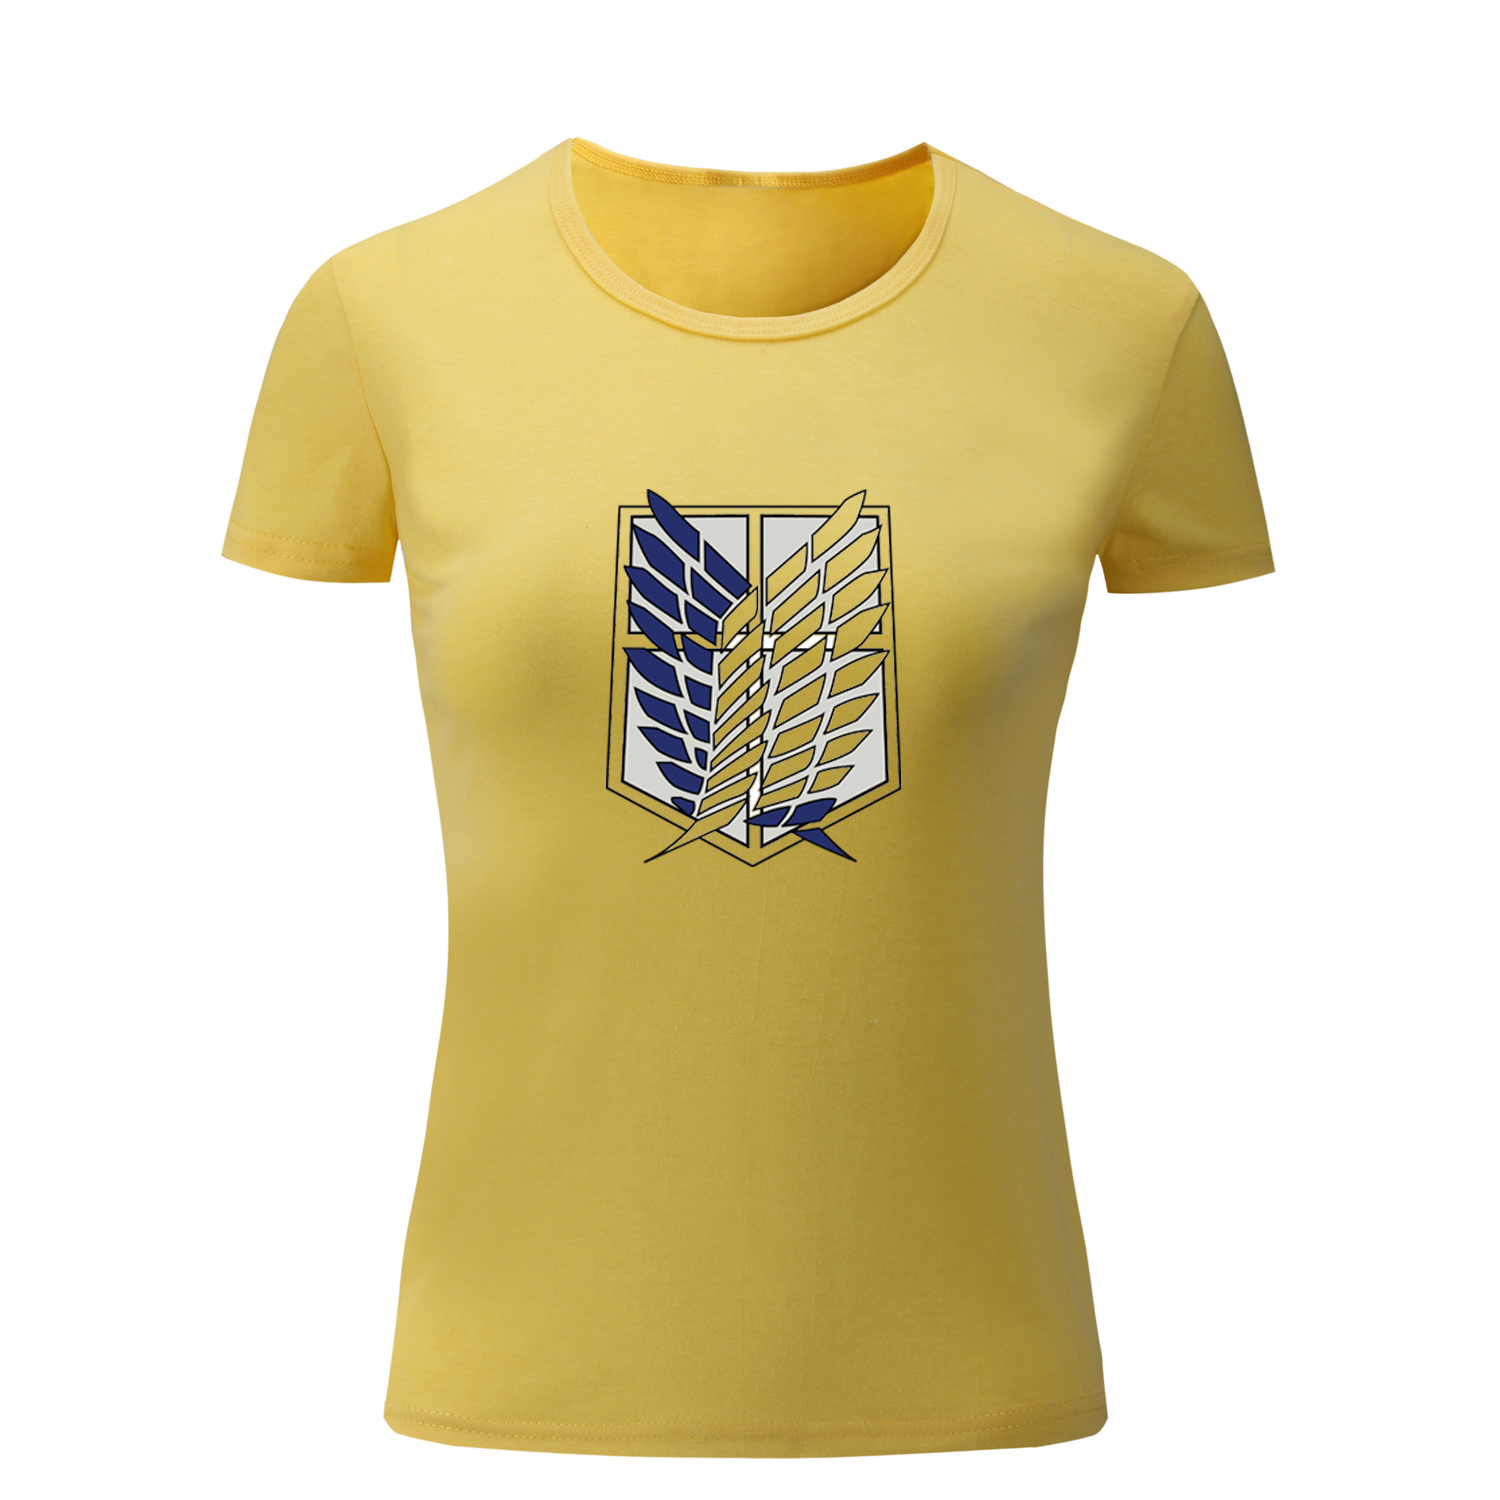 Attack on Titan T Shirts for Women